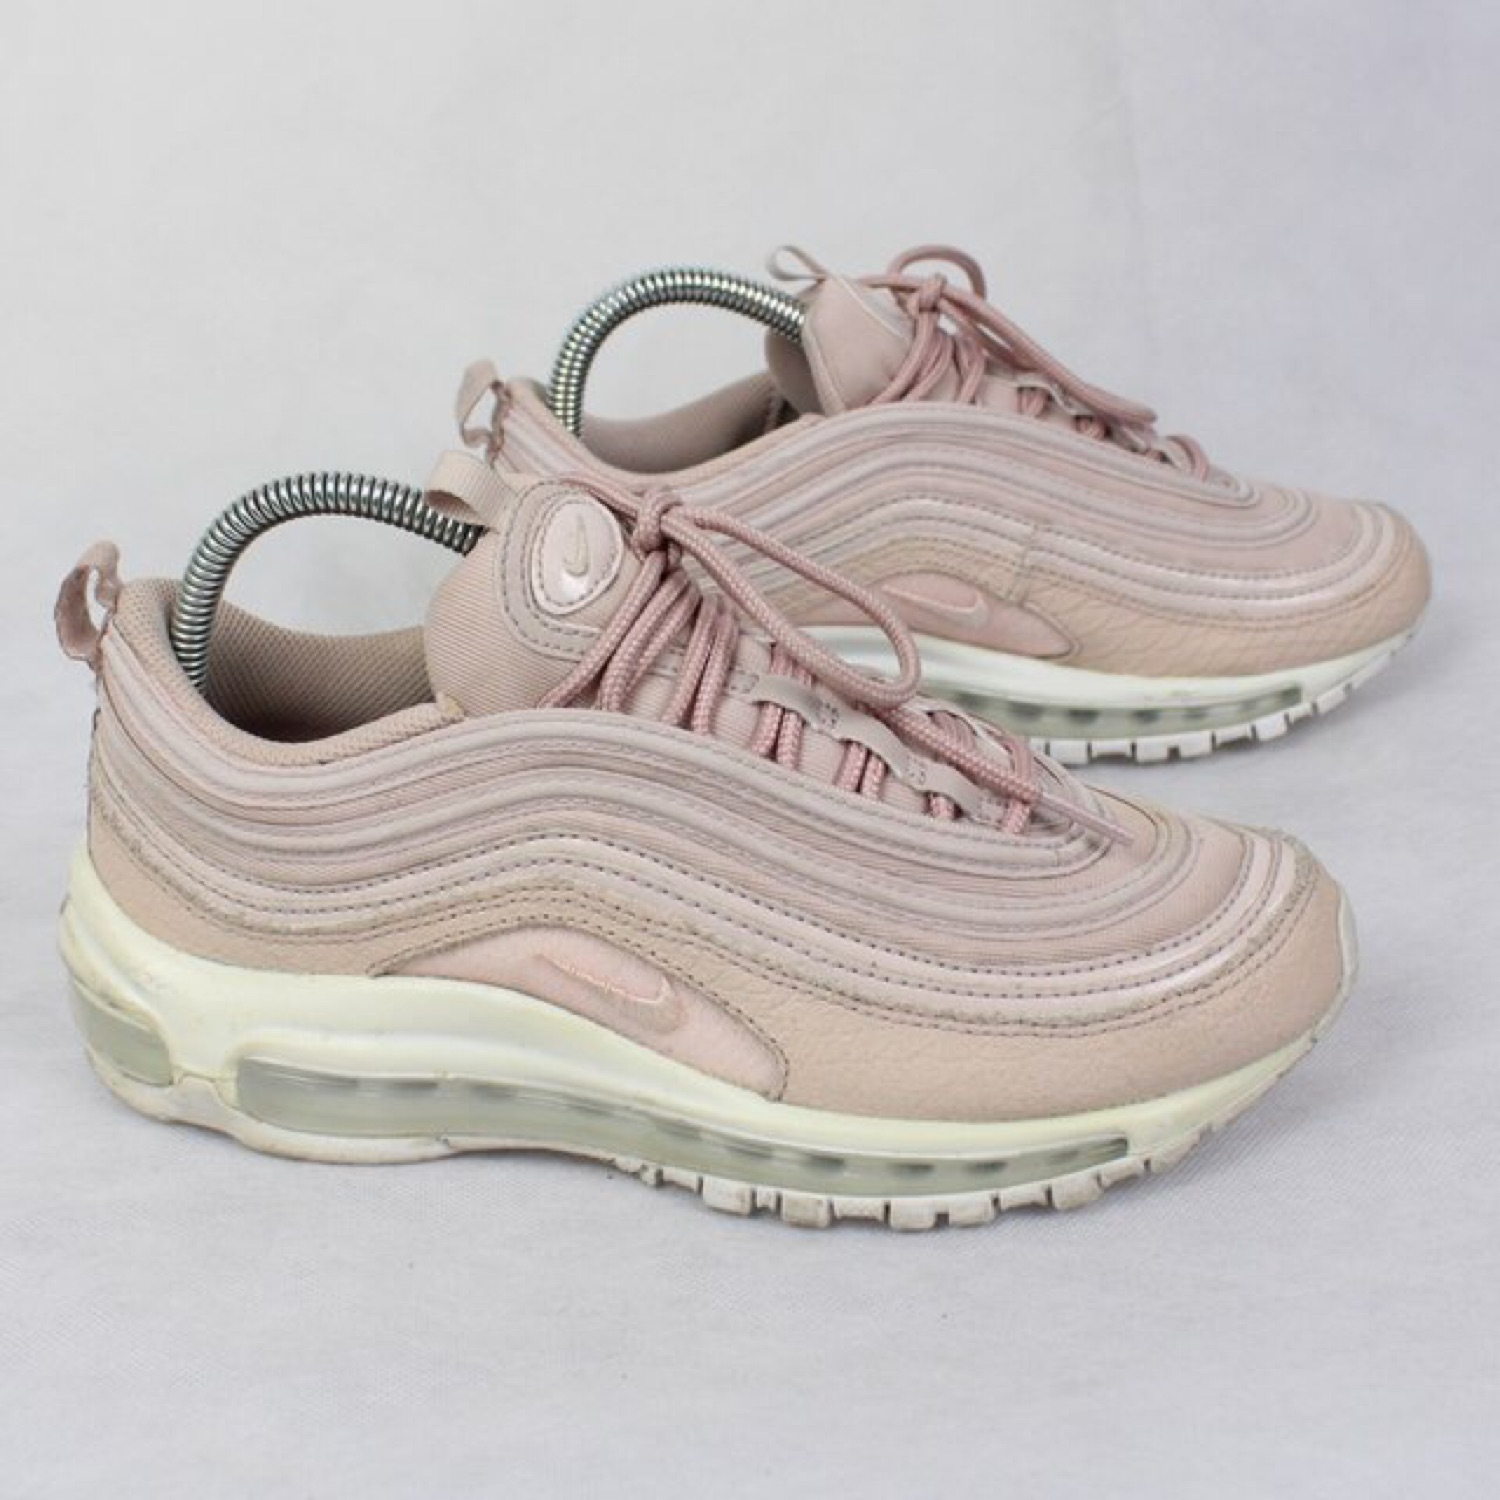 Nike Air Max 97 Slit Red Trainers